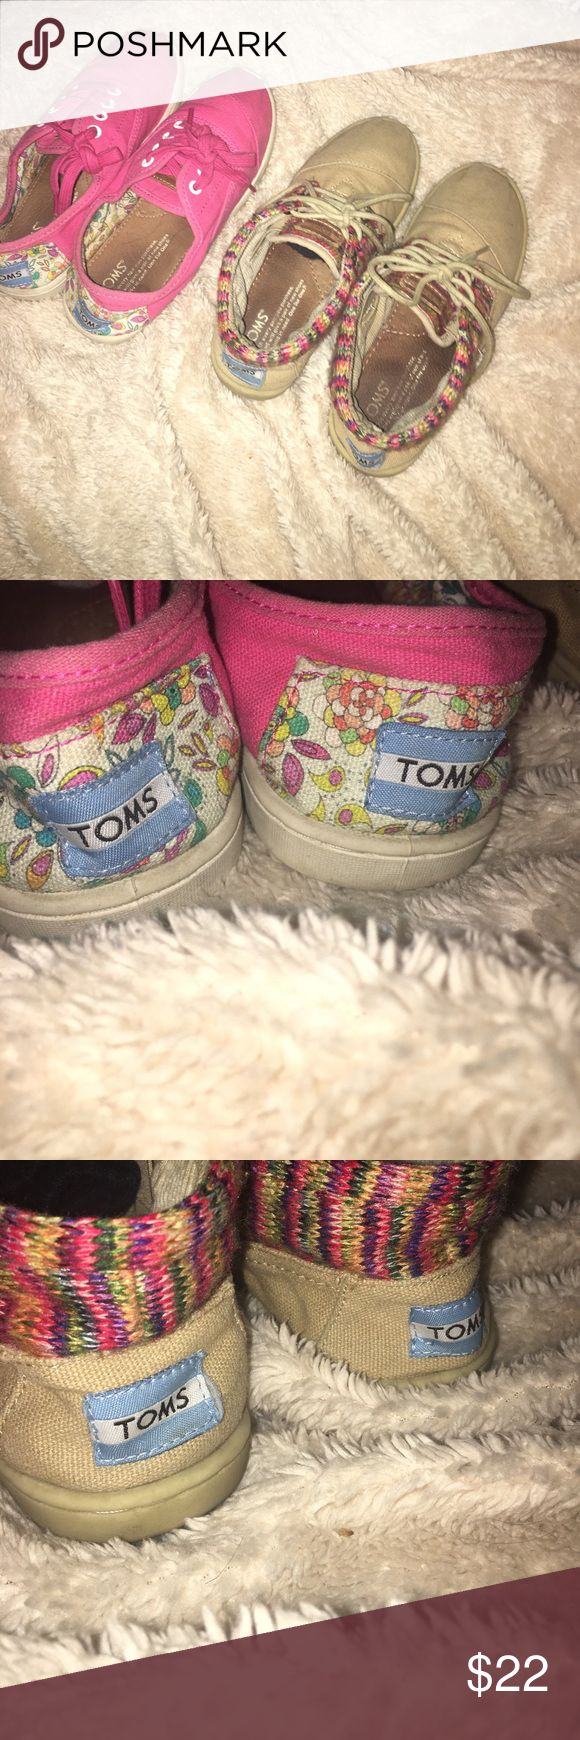 TOMS bundle w both toms bags Lightly worn, good condition. Super cute and comfy! The pink are a size 3.5 in kids and the brown are a size 3 in kids. Buy bundle for the price of half of what they were paid for, for 2️⃣ pairs. Toms Shoes Sneakers